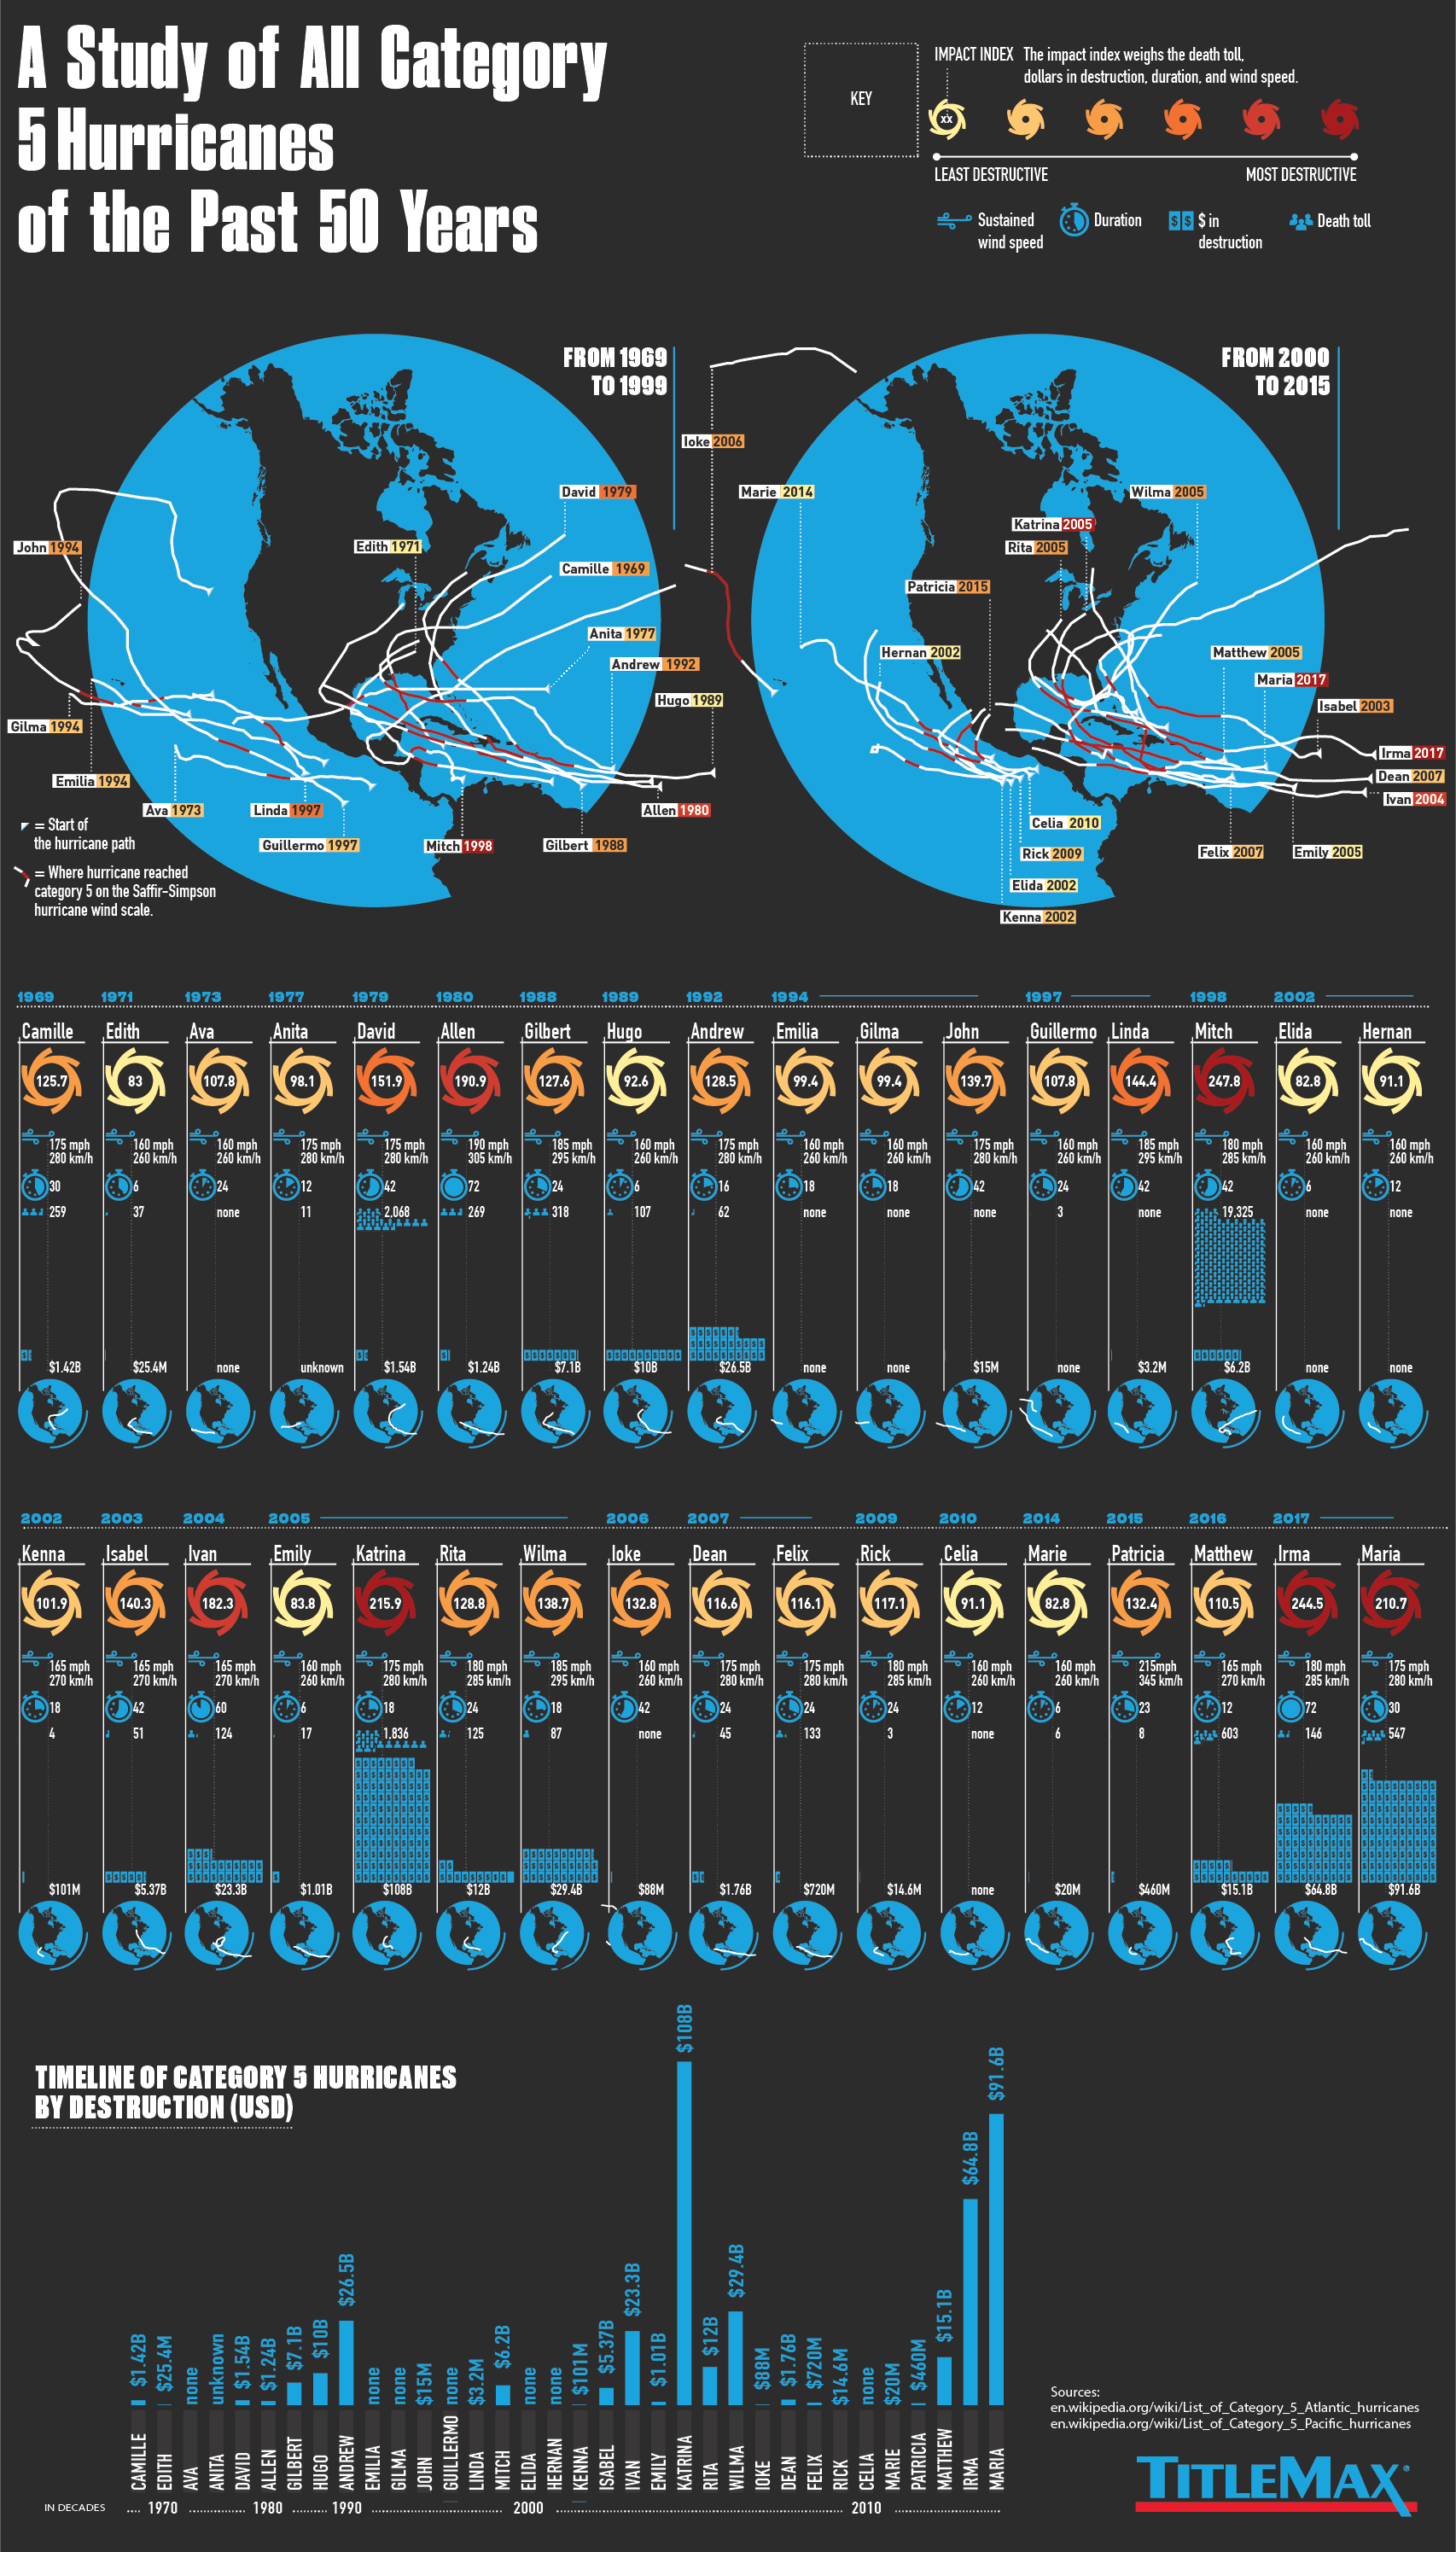 The Devastating Track Record of Category 5 Hurricanes in the Past 5 Decades - Infographic